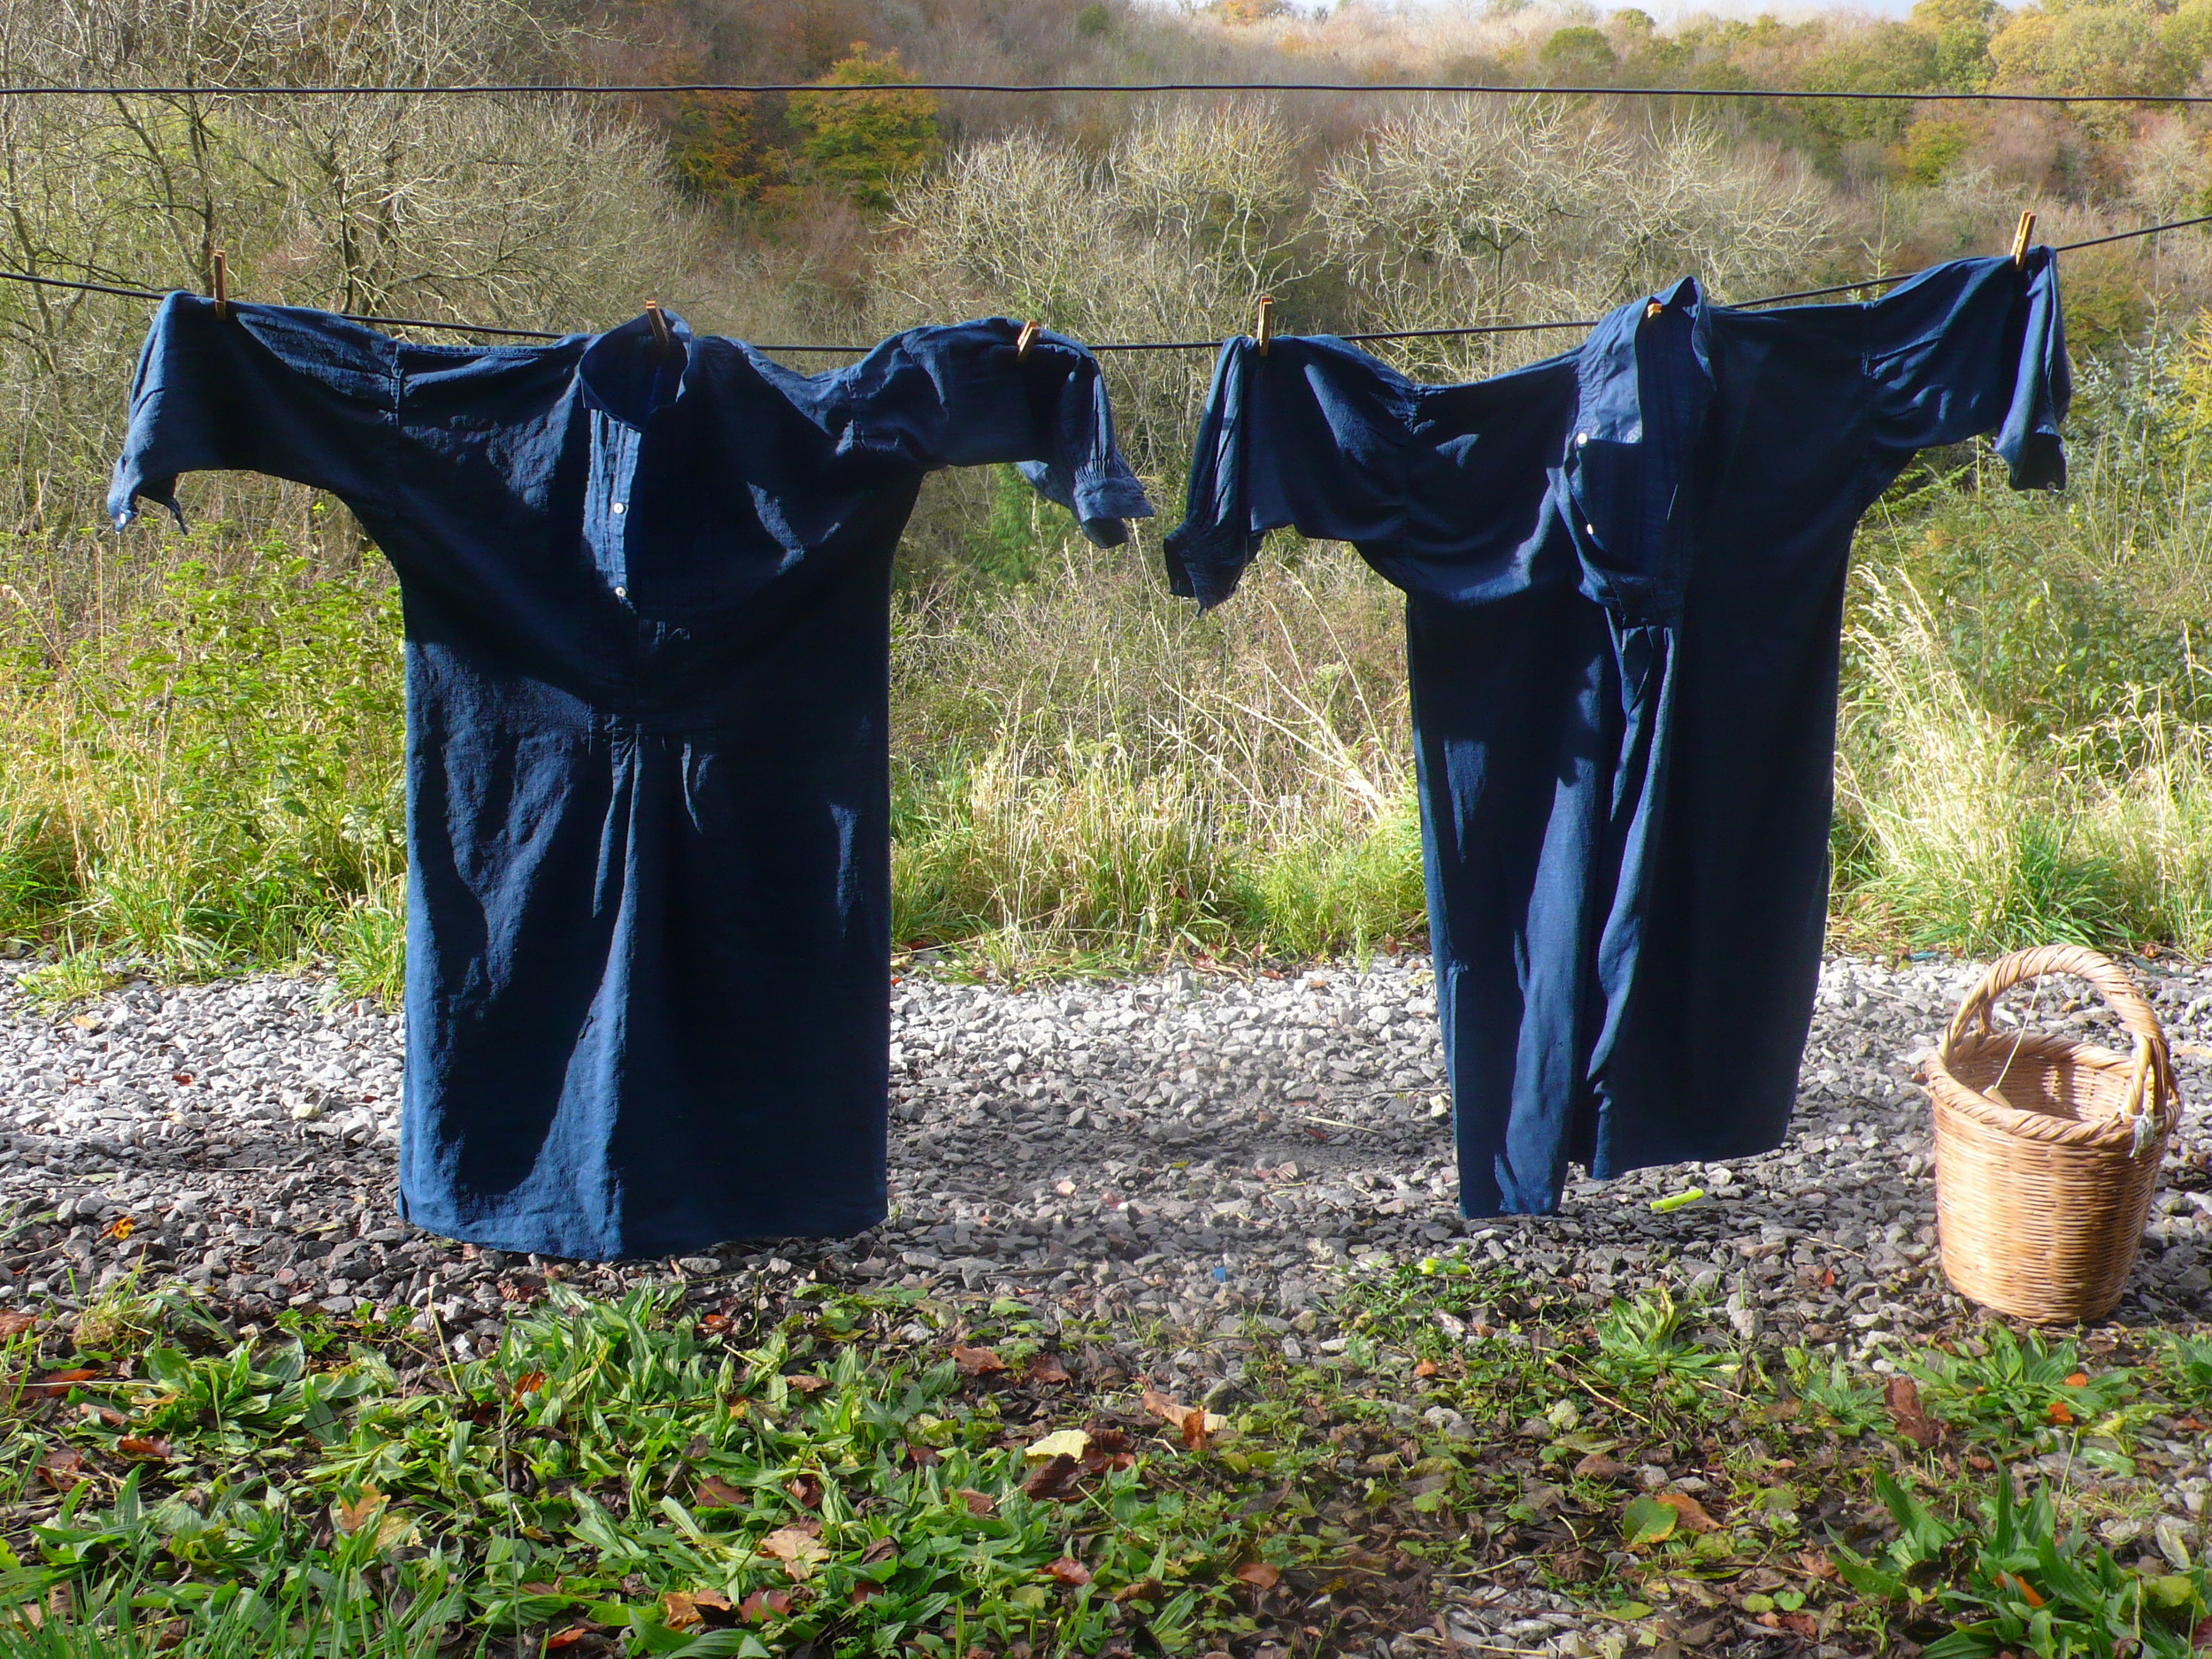 Antique French smocks drying after dyeing